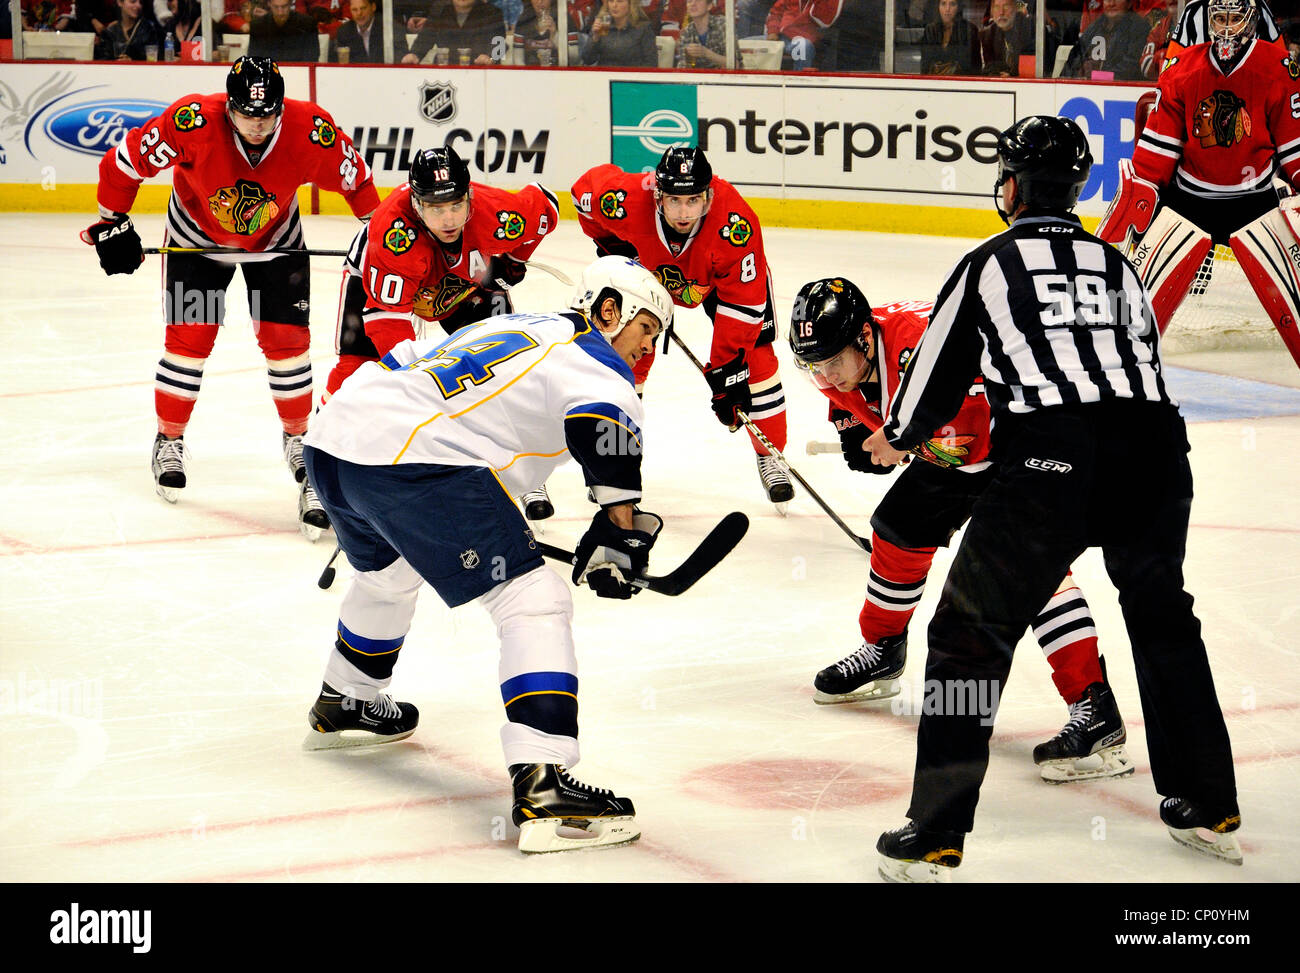 Faceoff during NHL's Chicago Blackhawks and St. Louis Blues.Faceoff during NHL's Chicago Blackhawks and - Stock Image